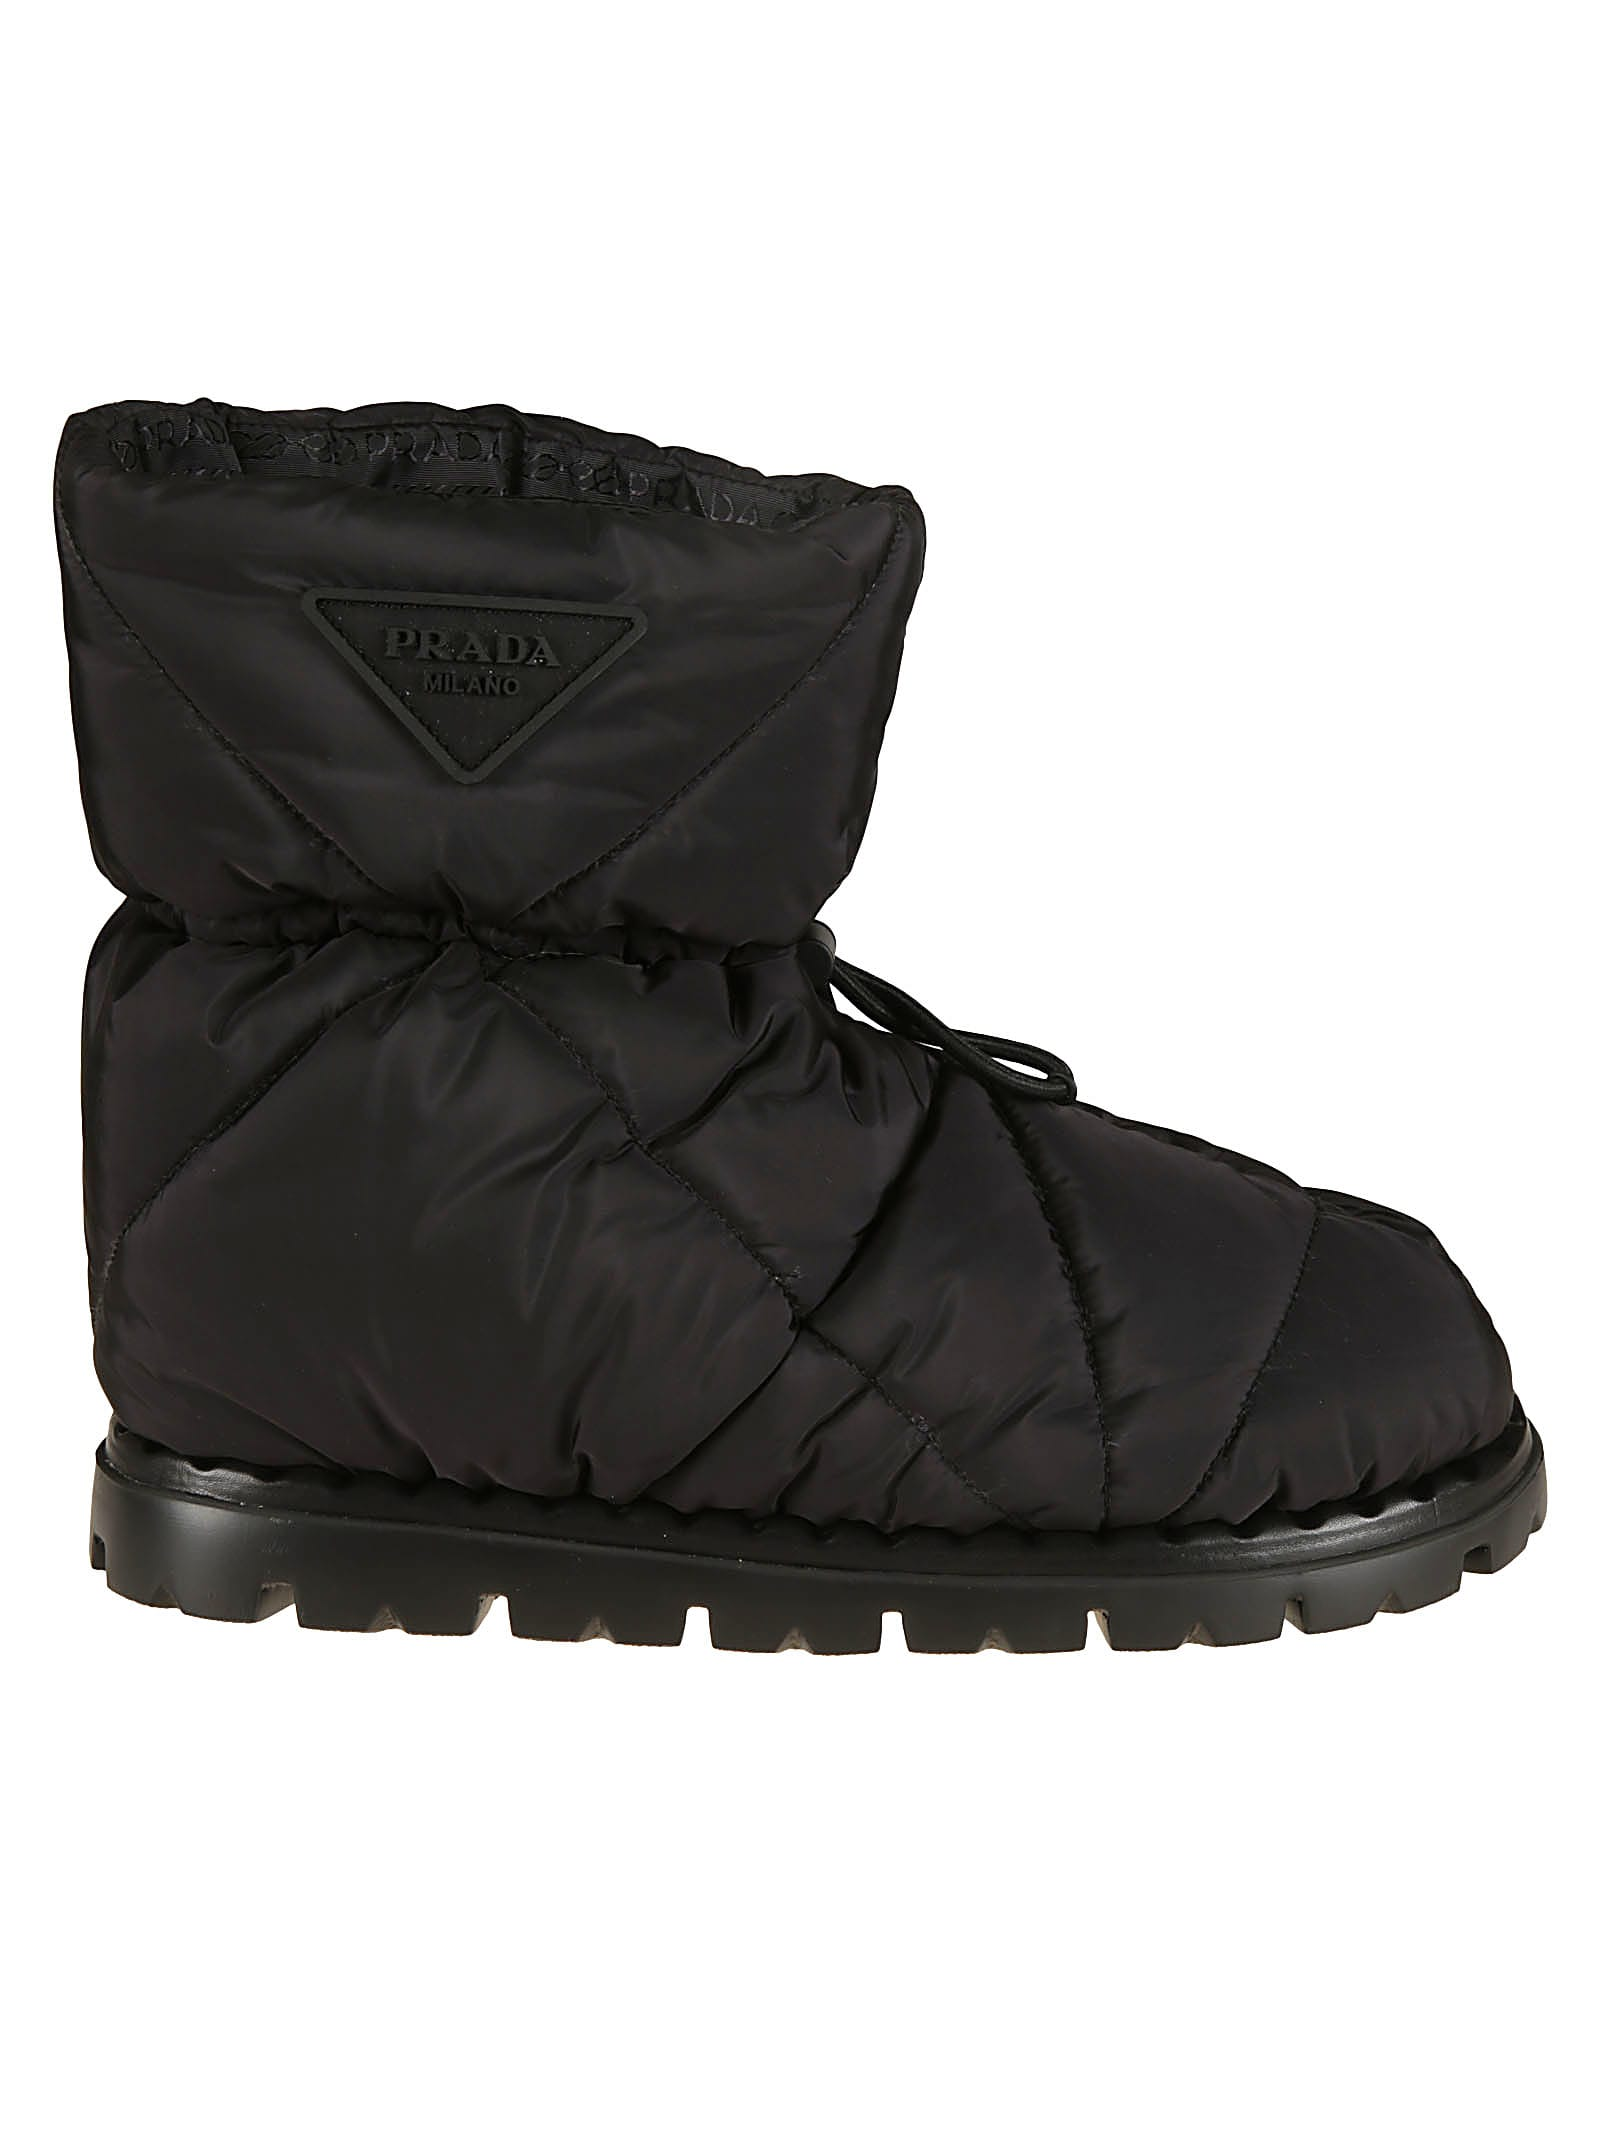 Buy Prada Quilted Logo Ankle Boots online, shop Prada shoes with free shipping